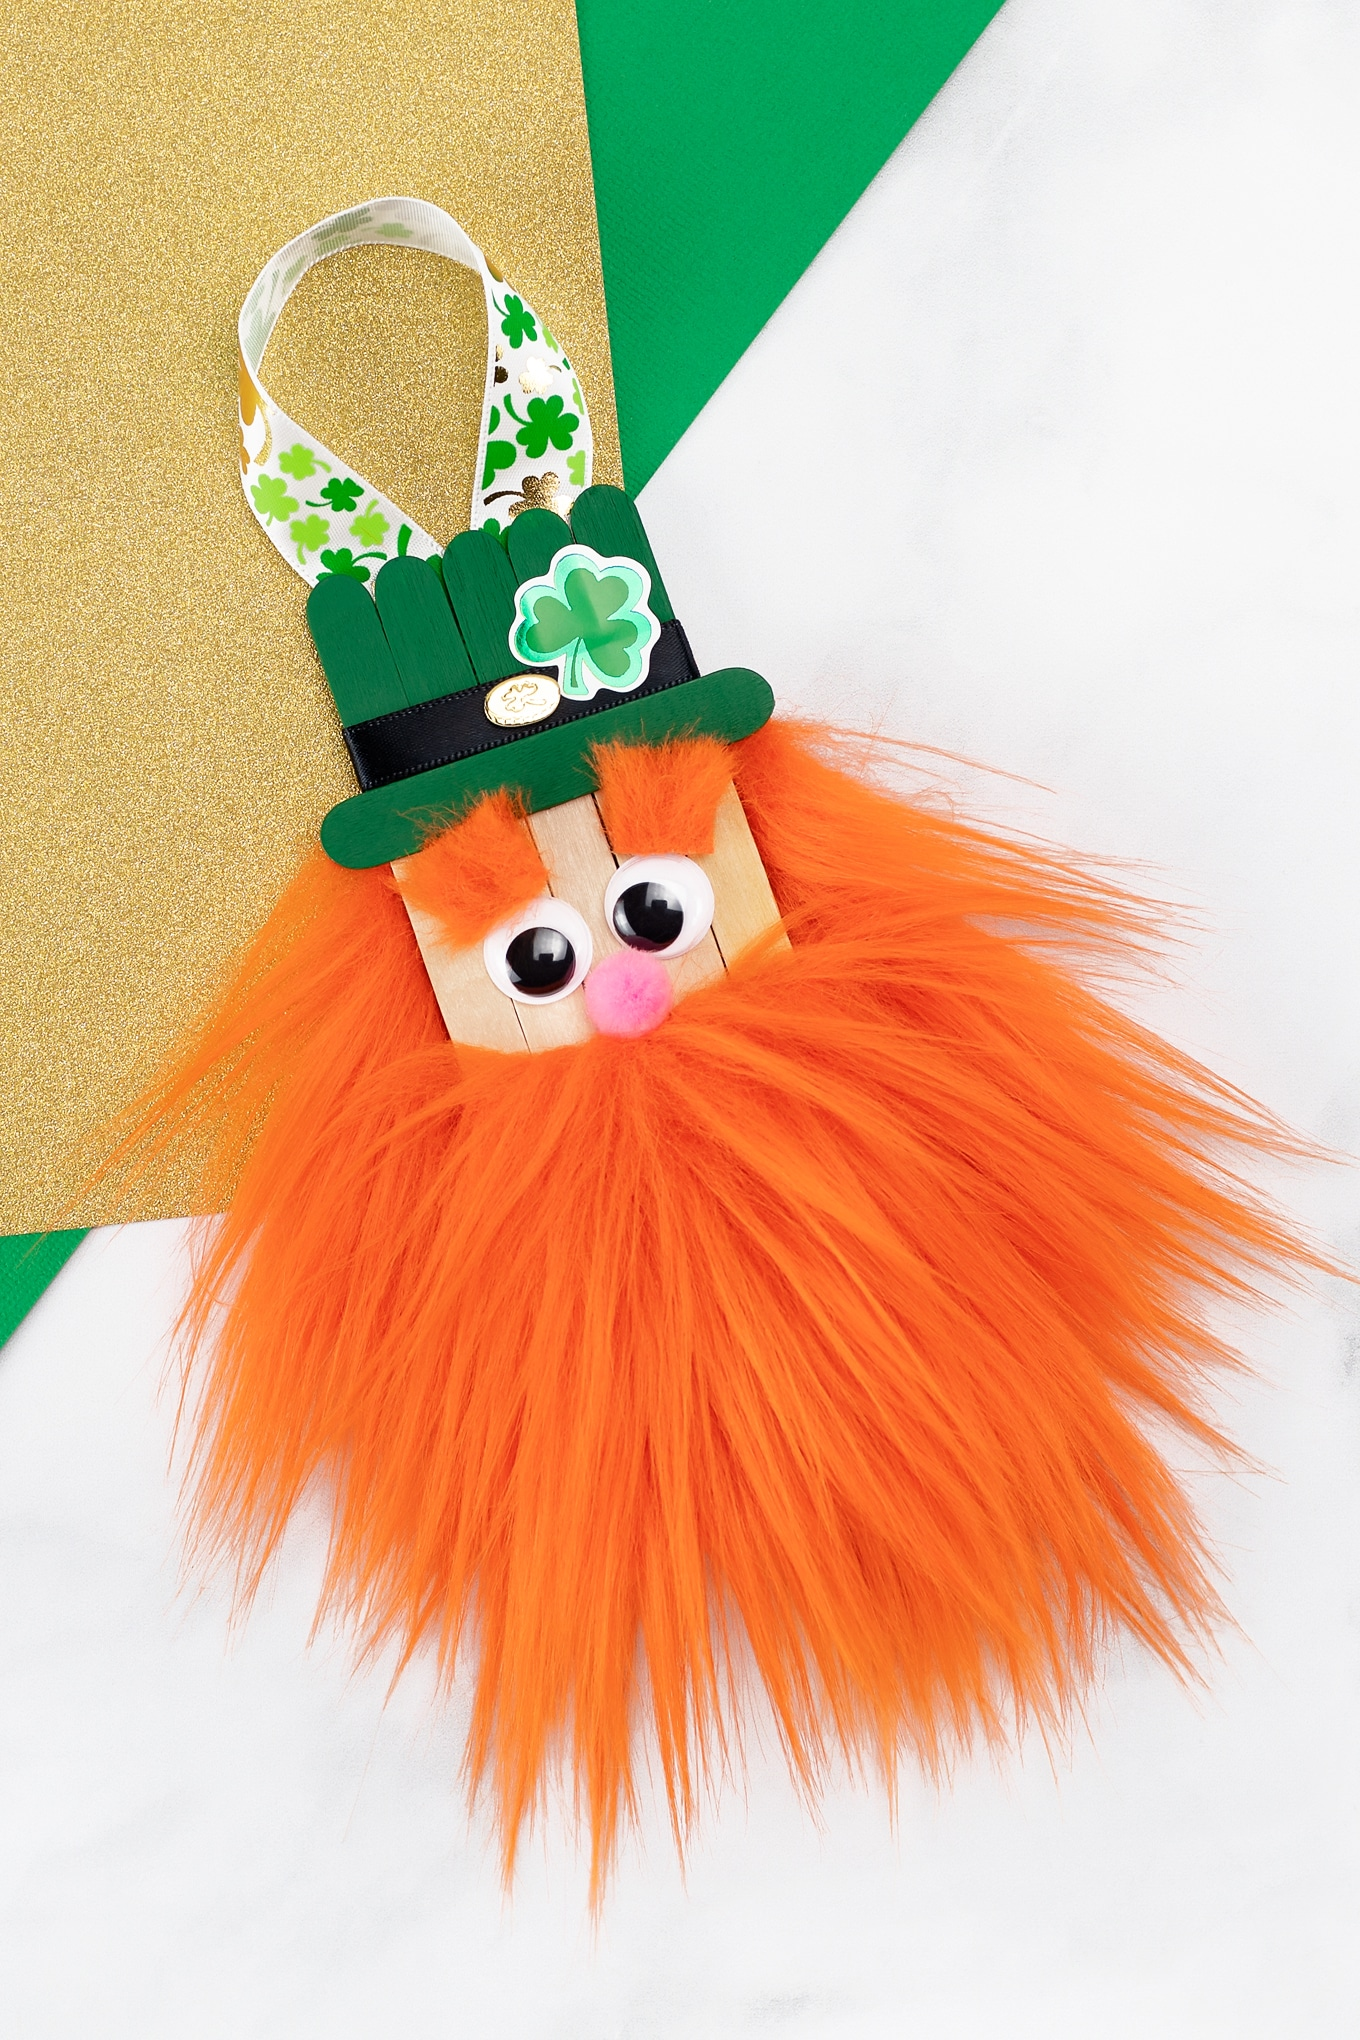 Popsicle Stick Leprechaun Craft for Kids